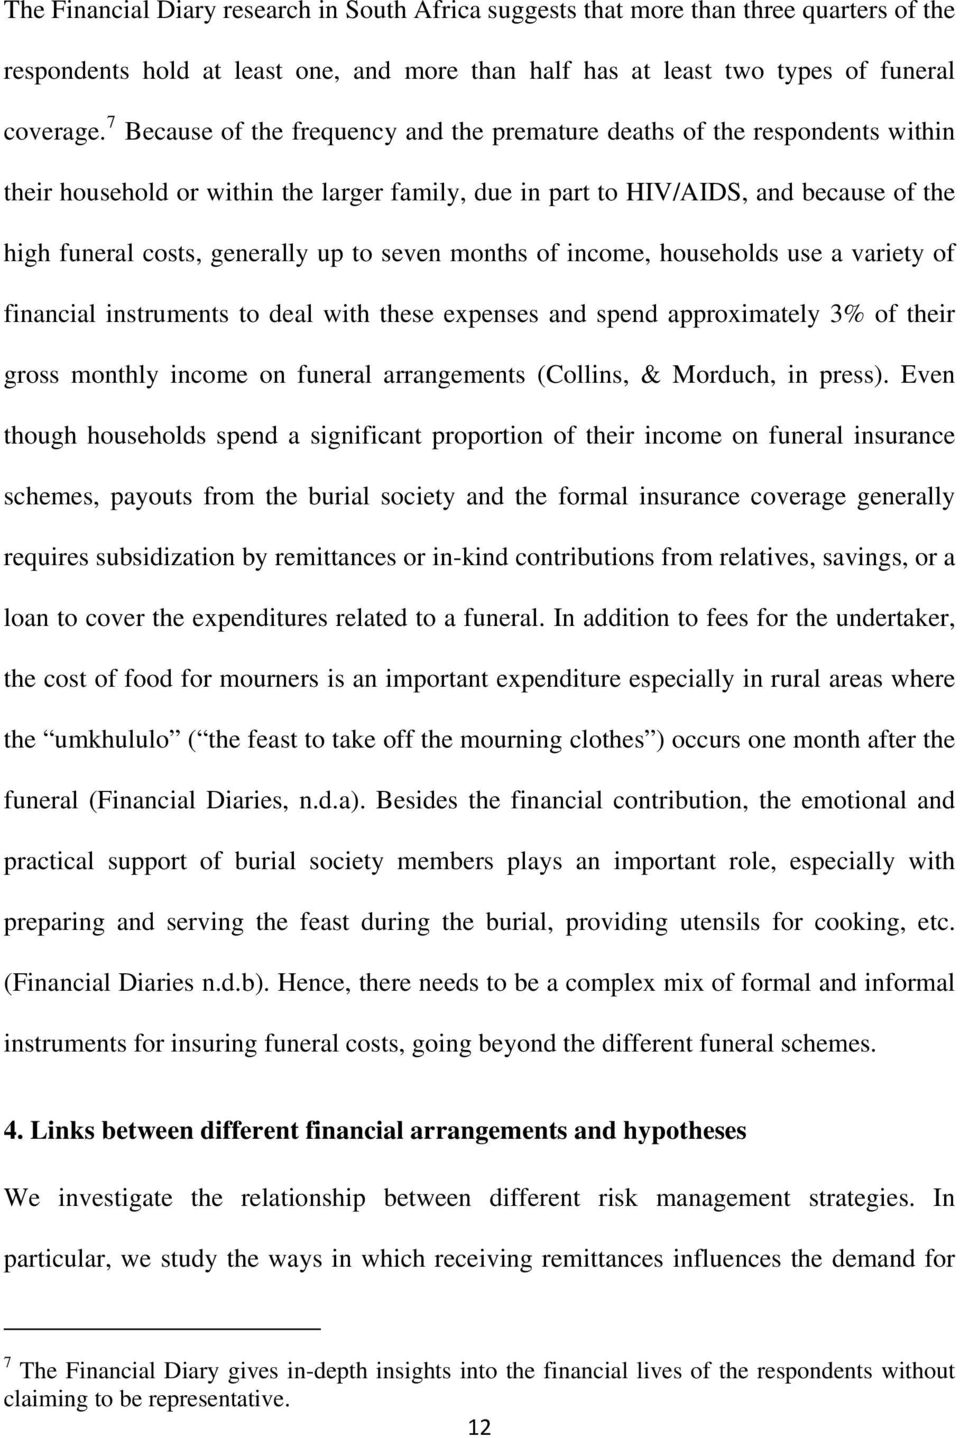 to seven months of income, households use a variety of financial instruments to deal with these expenses and spend approximately 3% of their gross monthly income on funeral arrangements (Collins, &